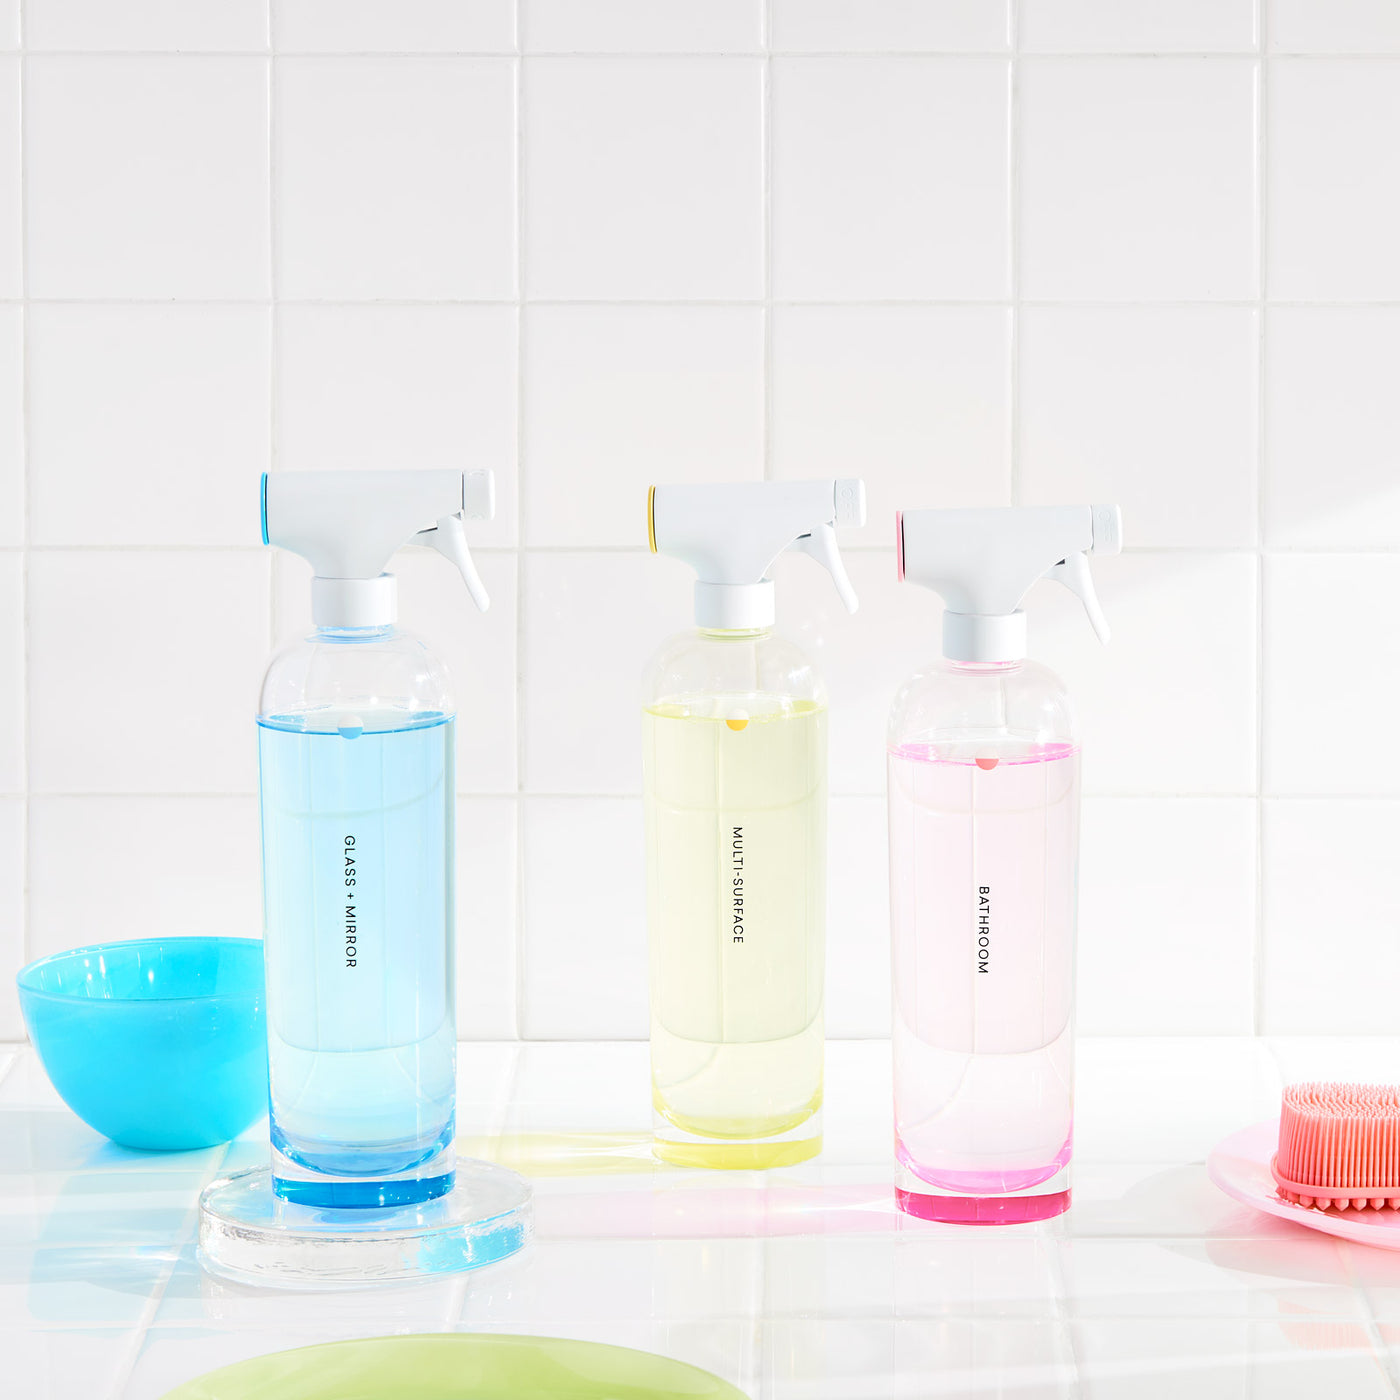 Biodegradable, non-toxic cleaners, scented and unscented, on display, with refillable tablets